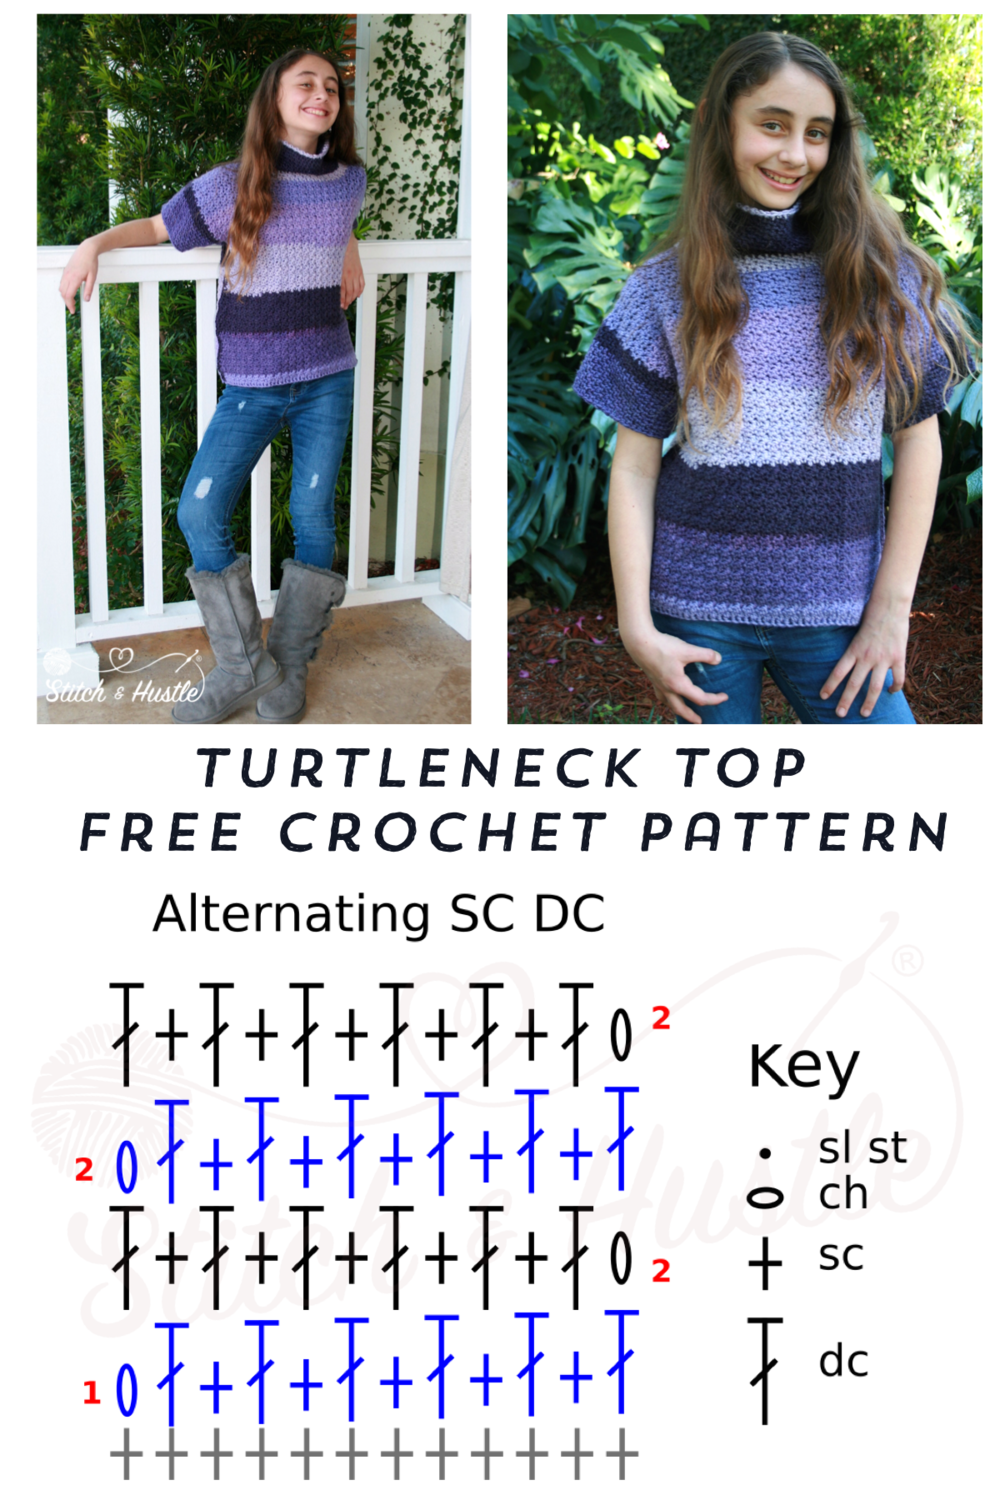 Turtleneck_top_free_crochet_pattern_1.jpeg